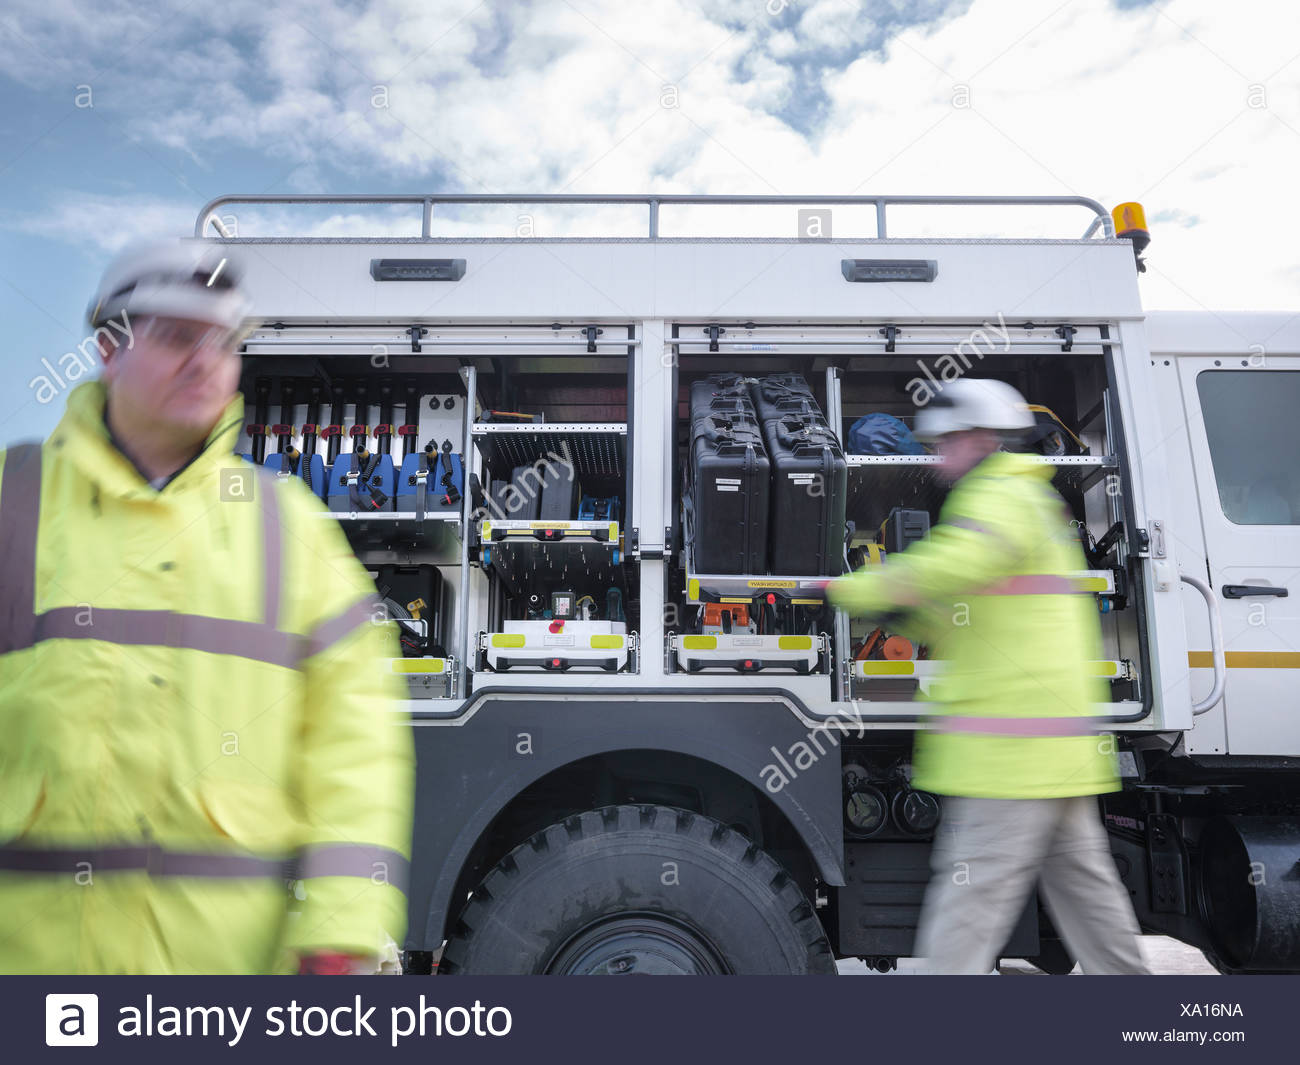 Emergency Response workers with specialist equipment and rescue truck - Stock Image